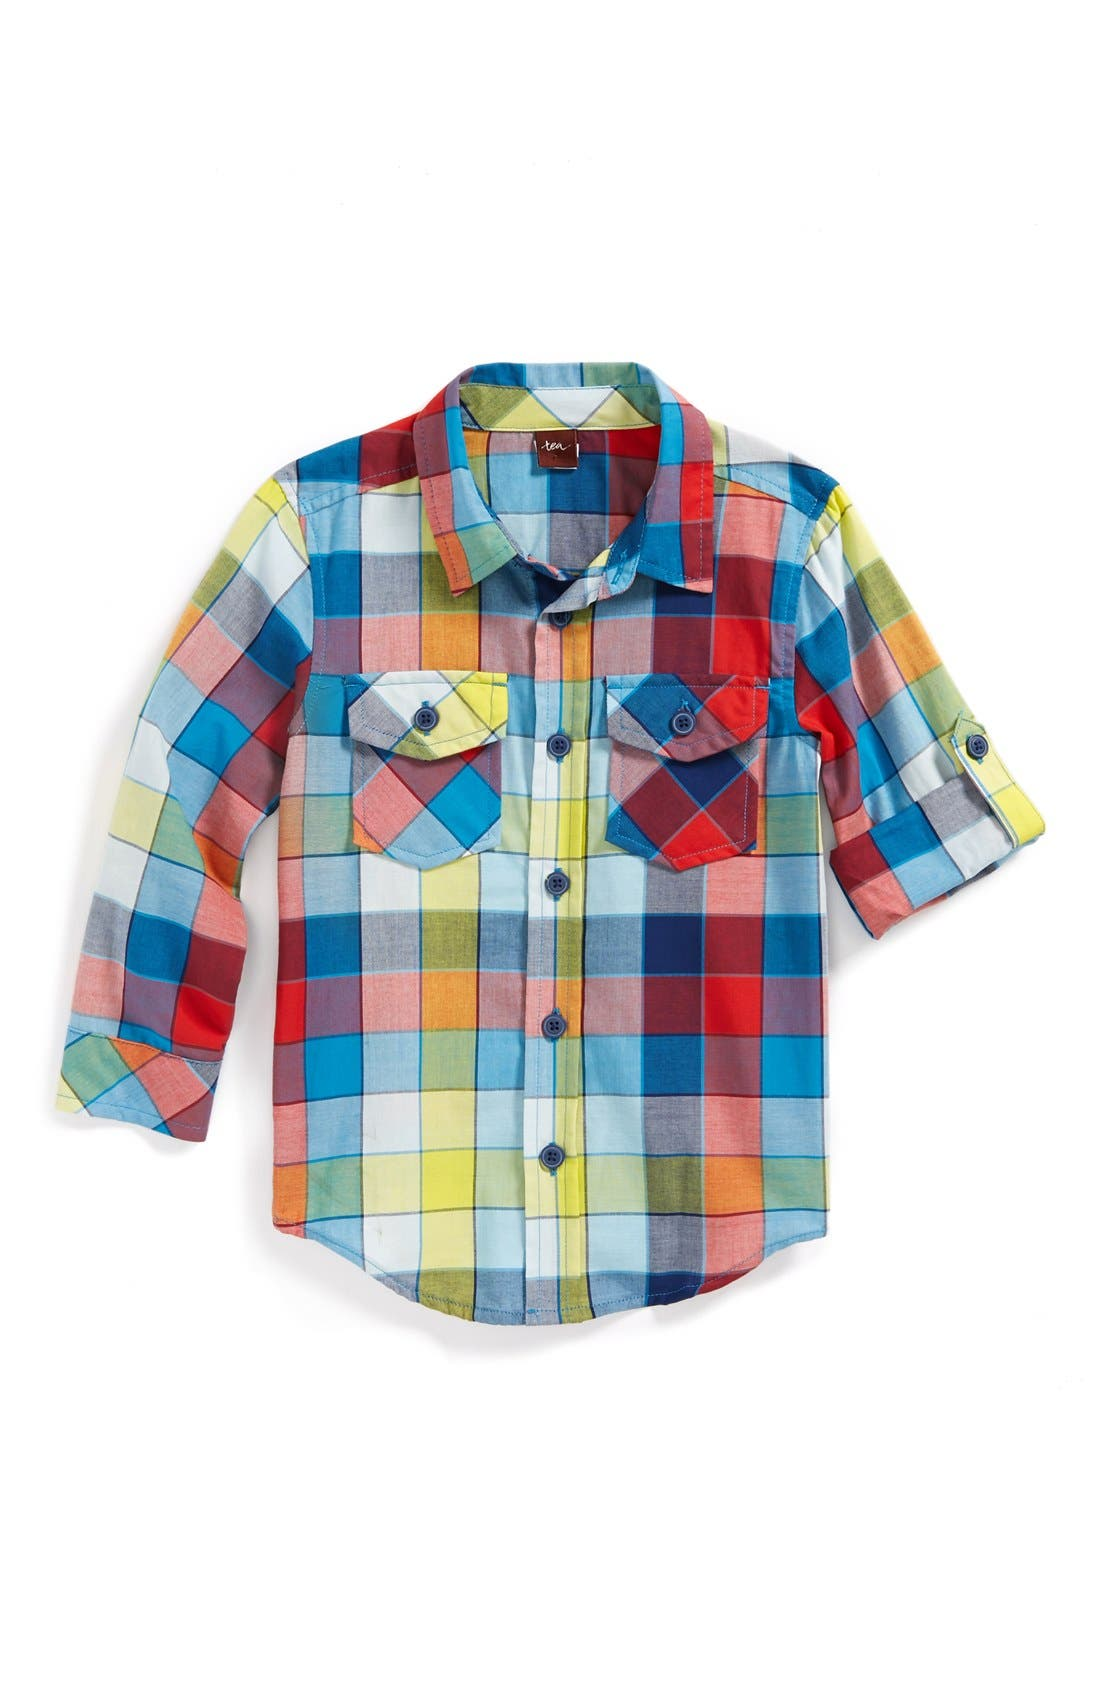 Main Image - Tea Collection 'Medina' Plaid Shirt (Toddler Boys)